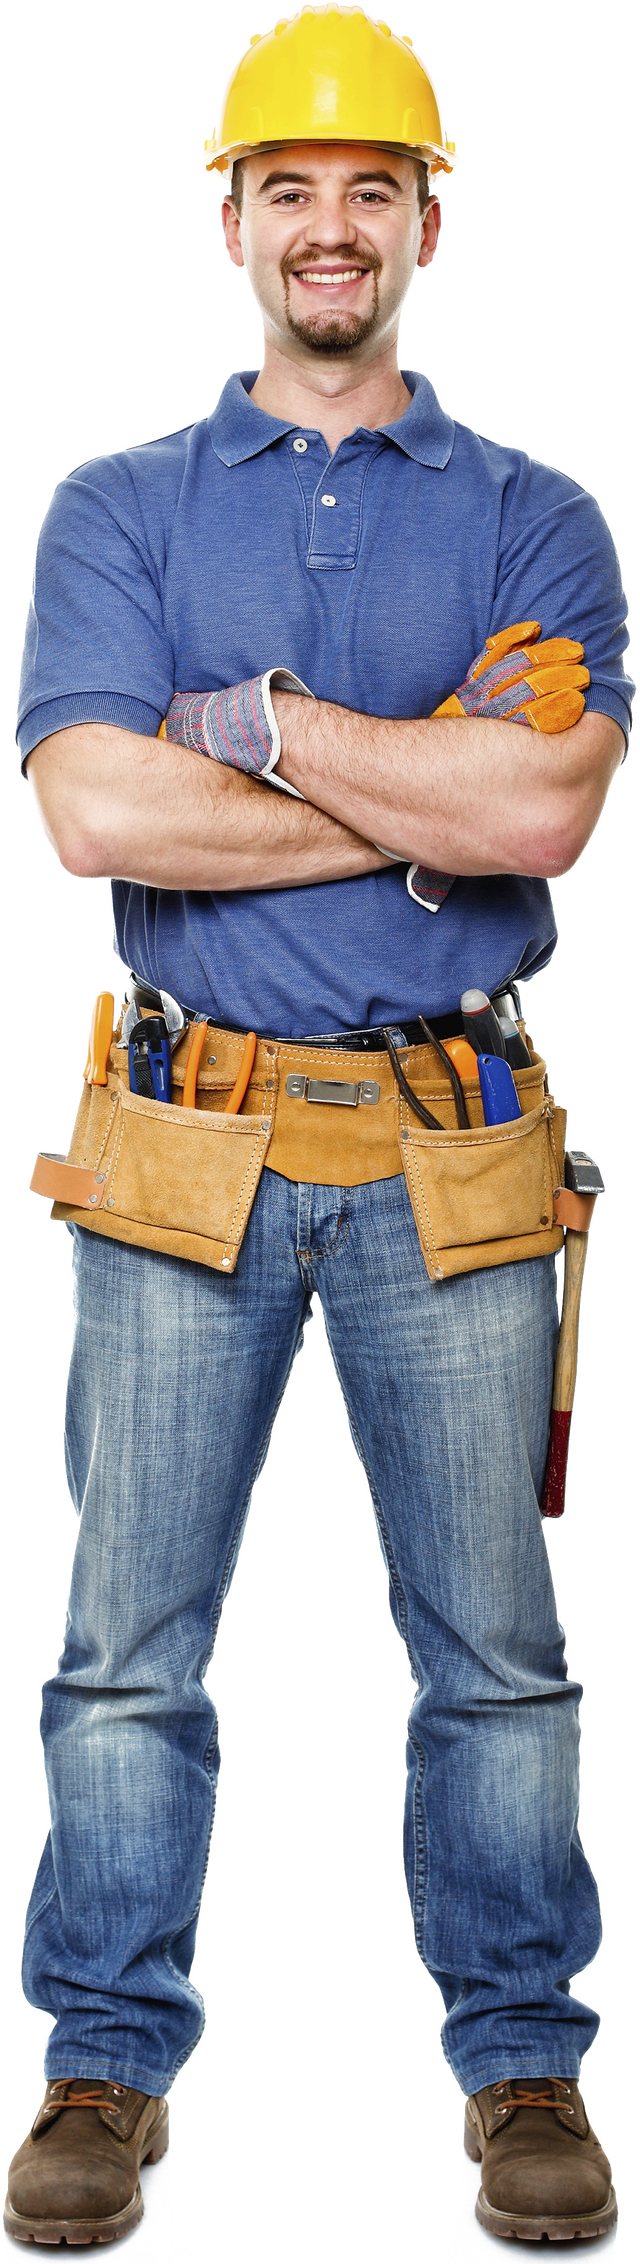 Electrical repair & maintenance expert